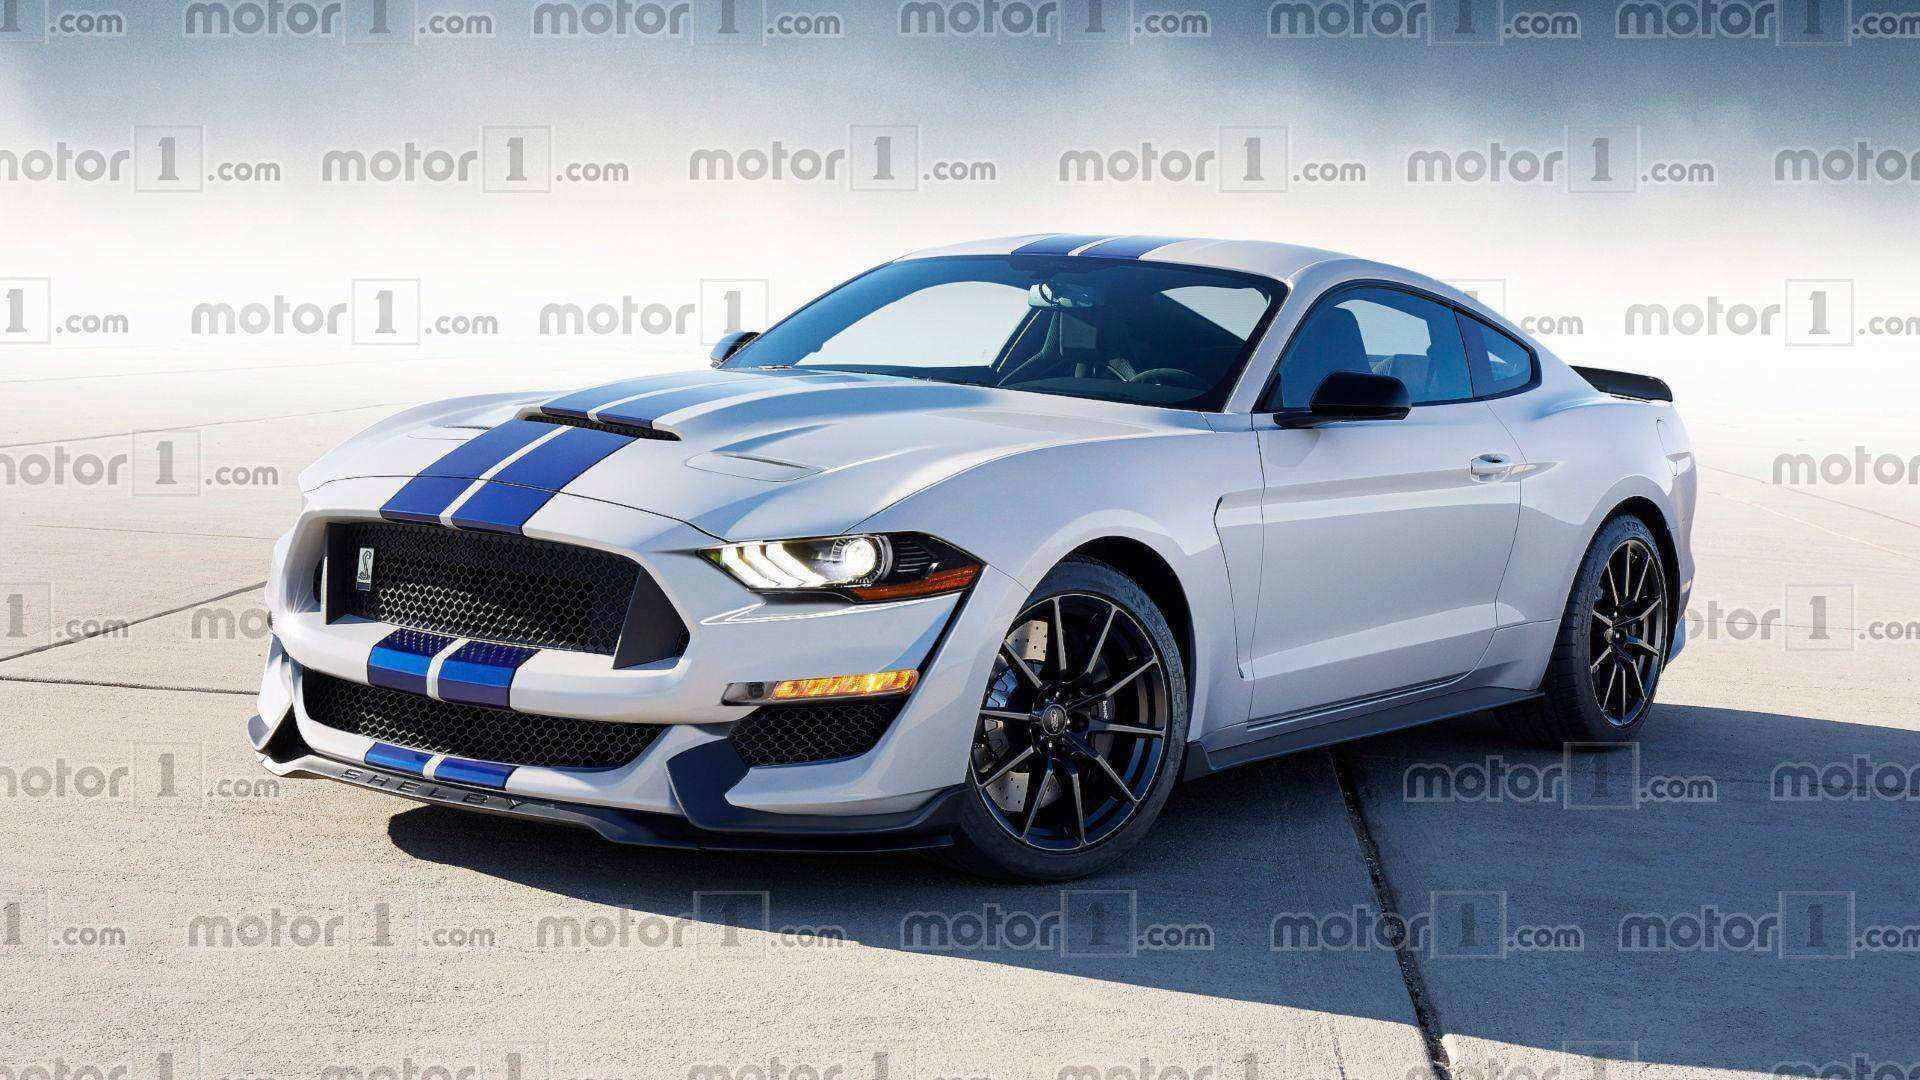 34 All New 2019 The Spy Shots Ford Mustang Svt Gt 500 Pictures